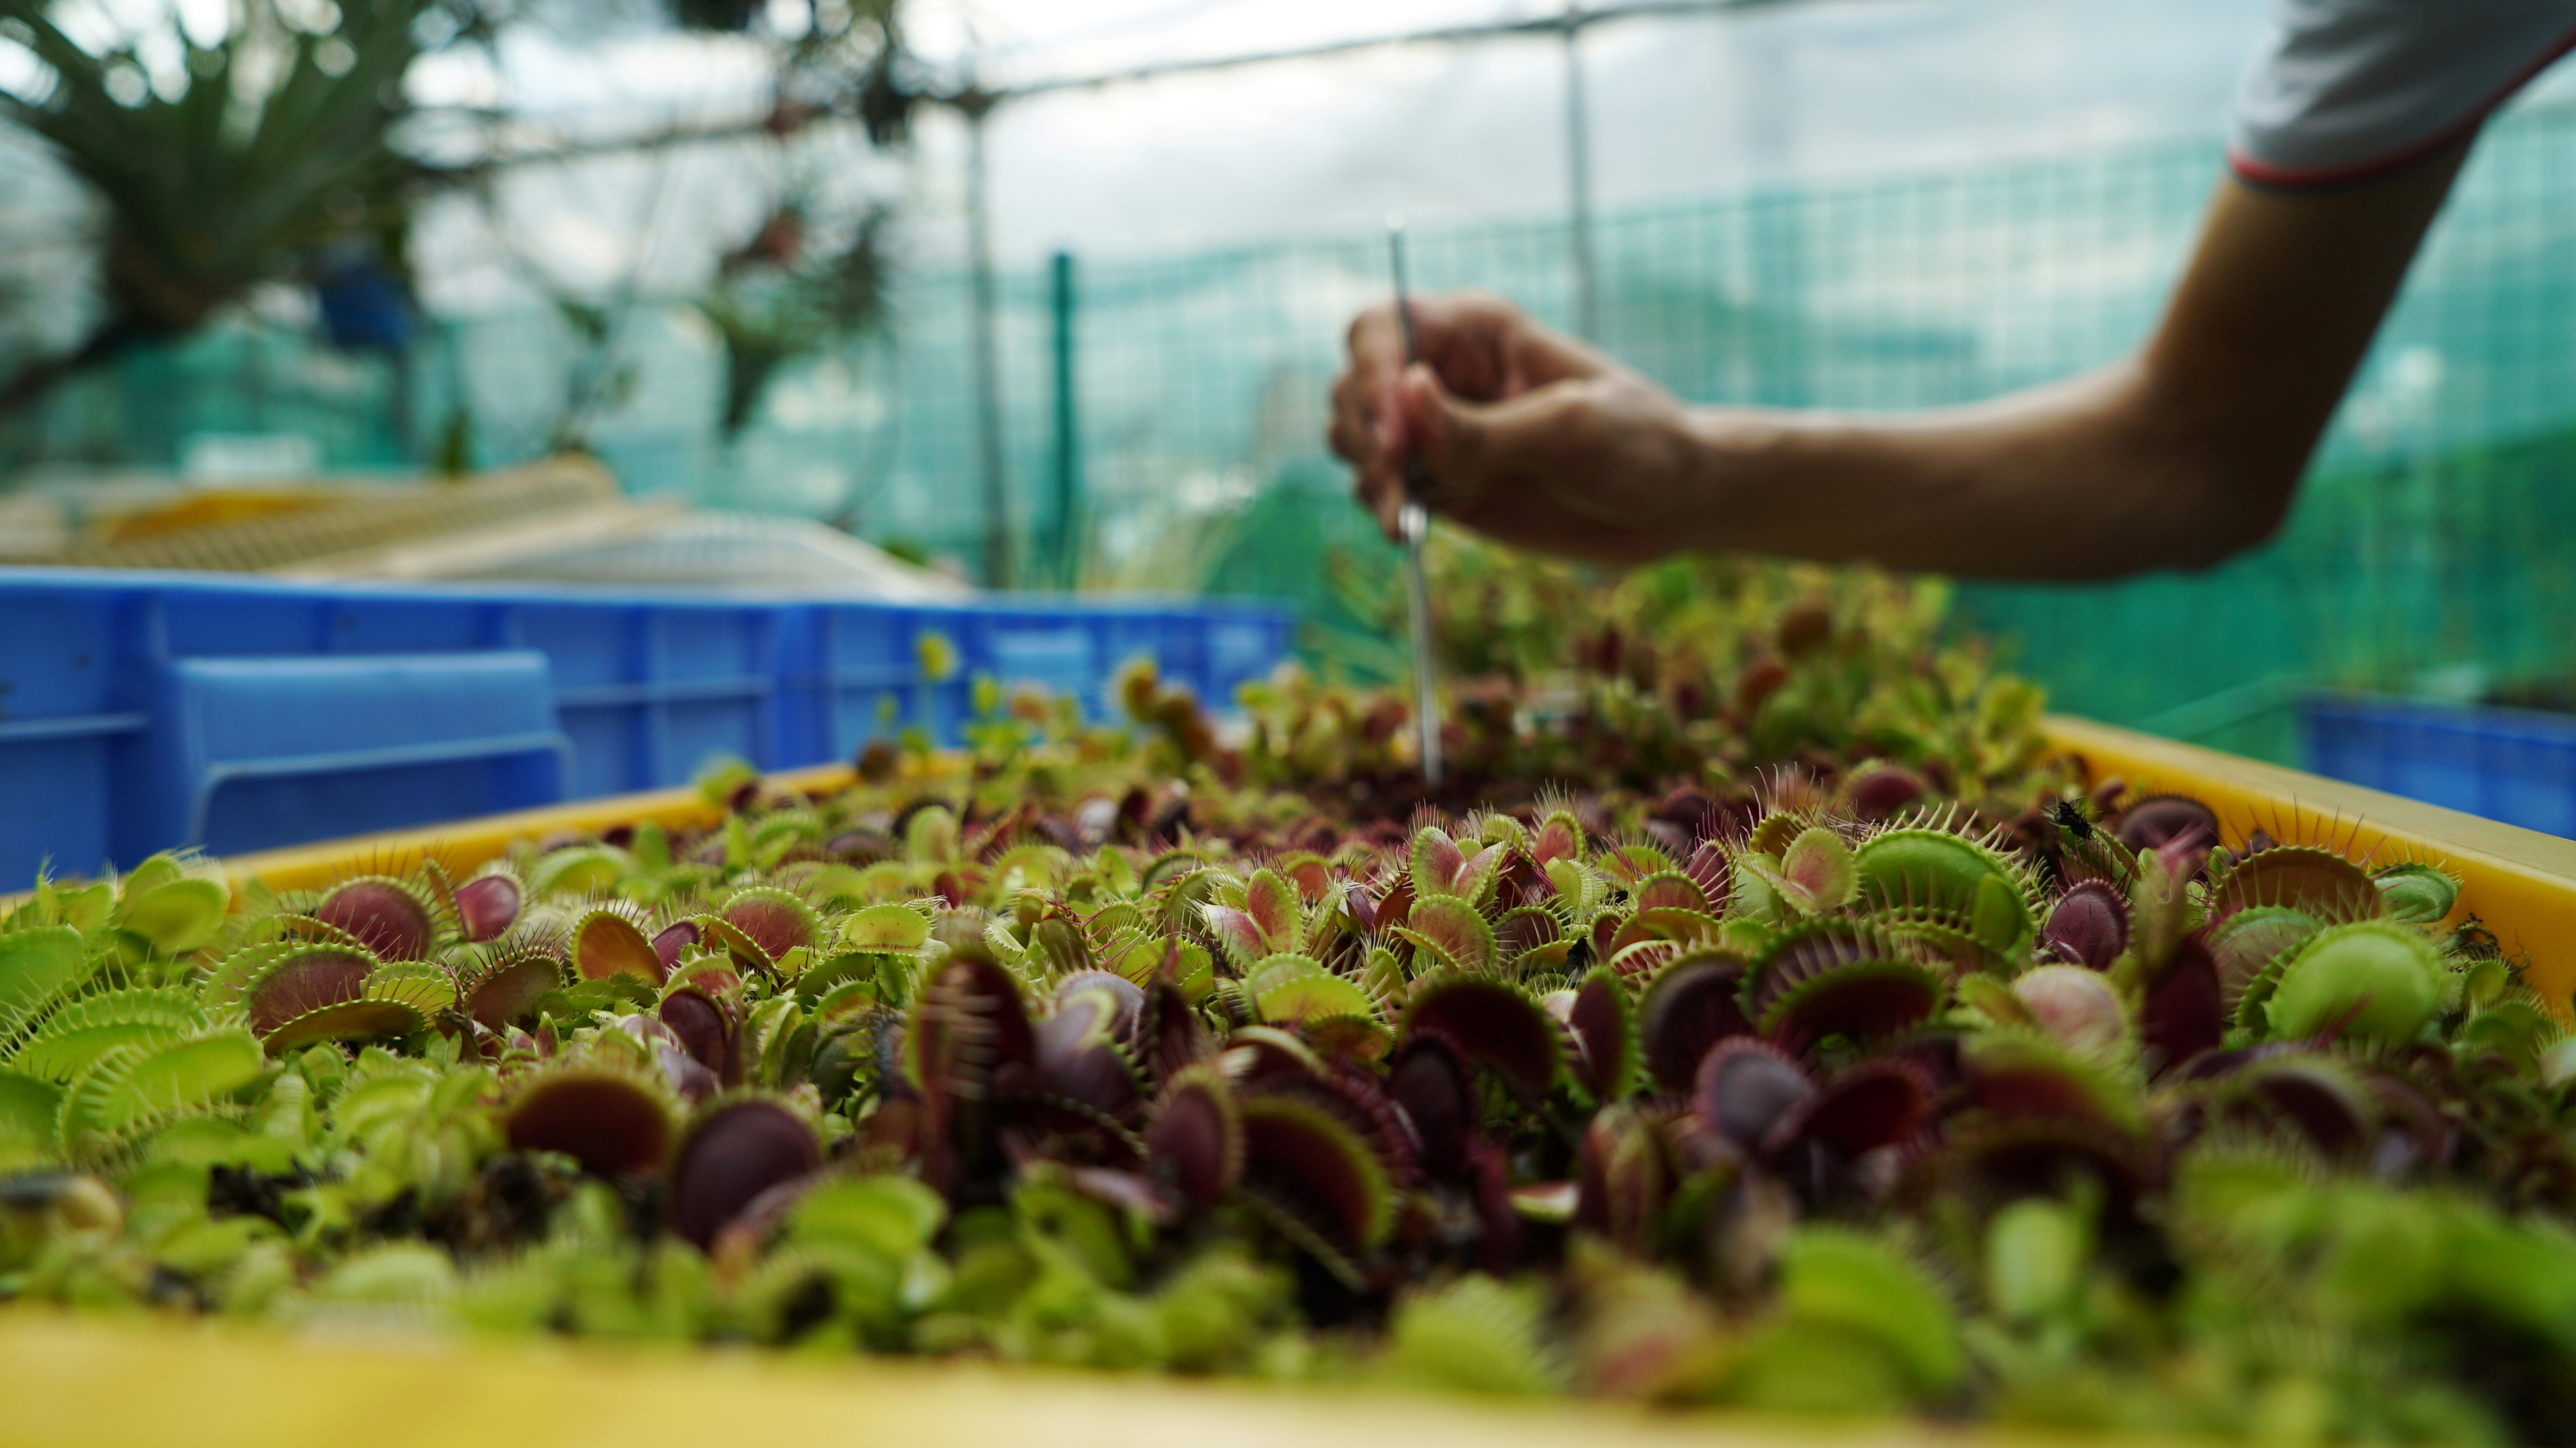 Founder of SG Venus Flytrap Darren Ng uses tweezers to feed a dead fly to a Venus flytrap at a greenhouse in Singapore May 2, 2021. Picture taken May 2, 2021. REUTERS/Joseph Campbell